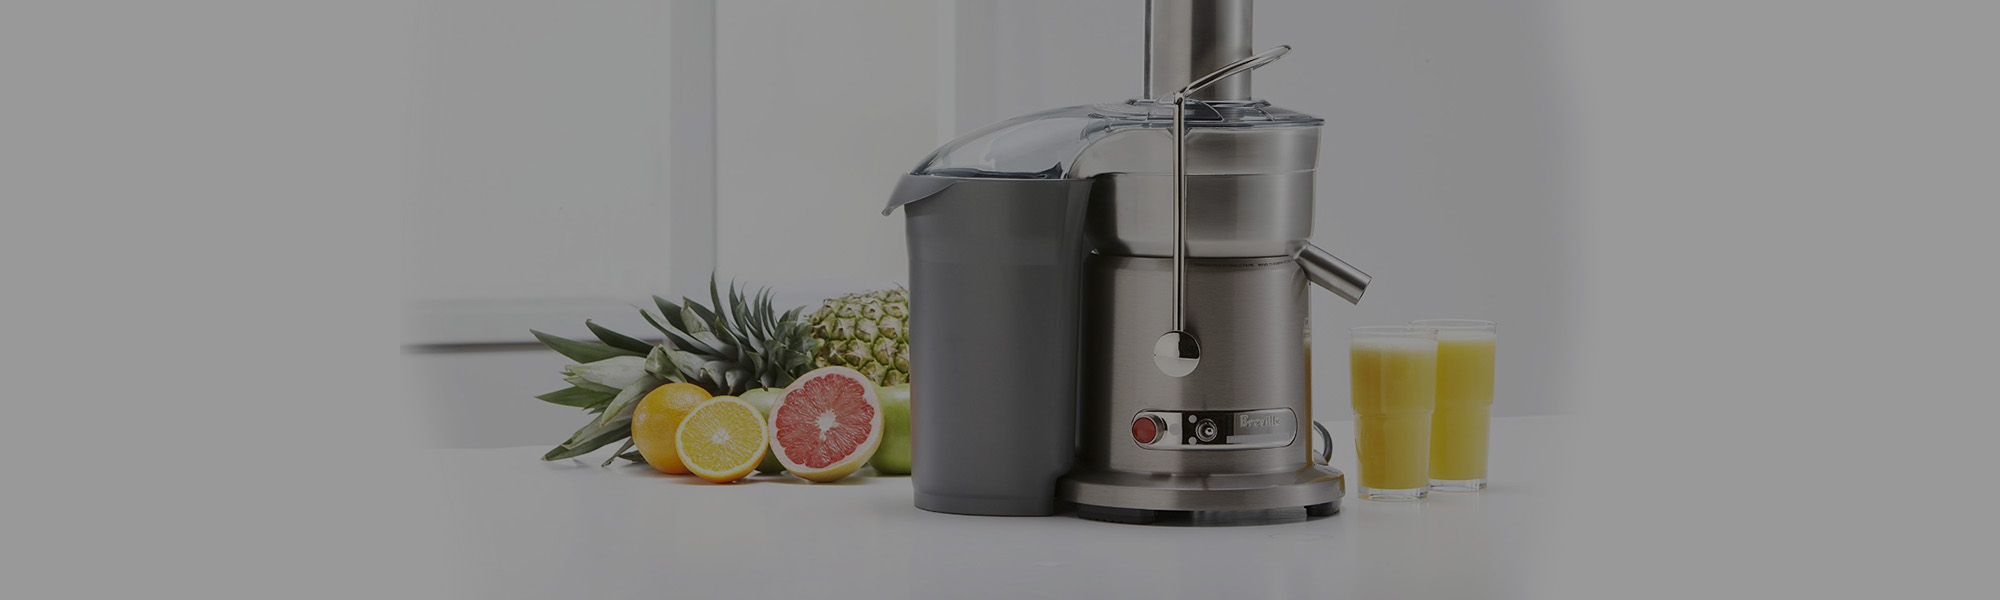 Black &#038; Decker 400-Watt Fruit<br>and Vegetable Juice Extractor